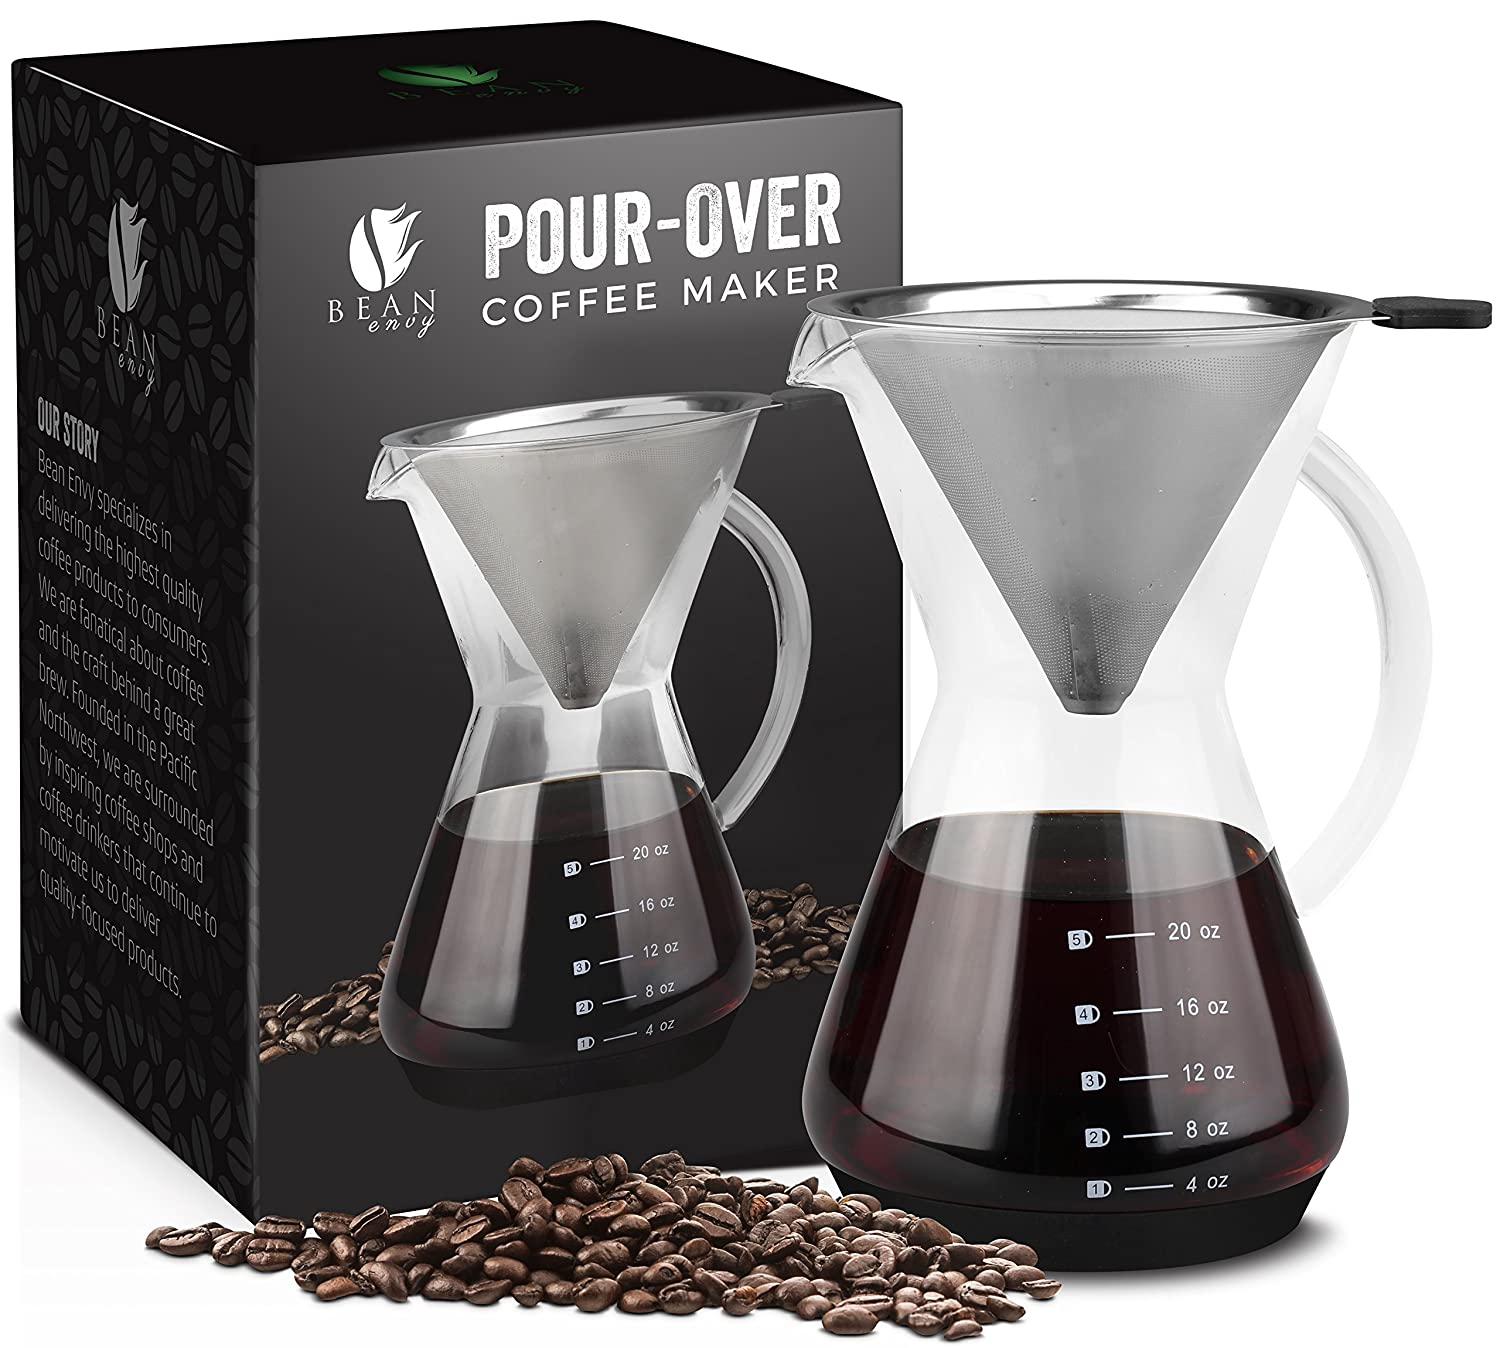 Bean Envy Pour Over Coffee Maker - 20 - oz Borosilicate Glass Carafe - Rust Resistant Stainless Steel Paperless Filter/Dripper - Includes Patent Pending Silicone Sleeve